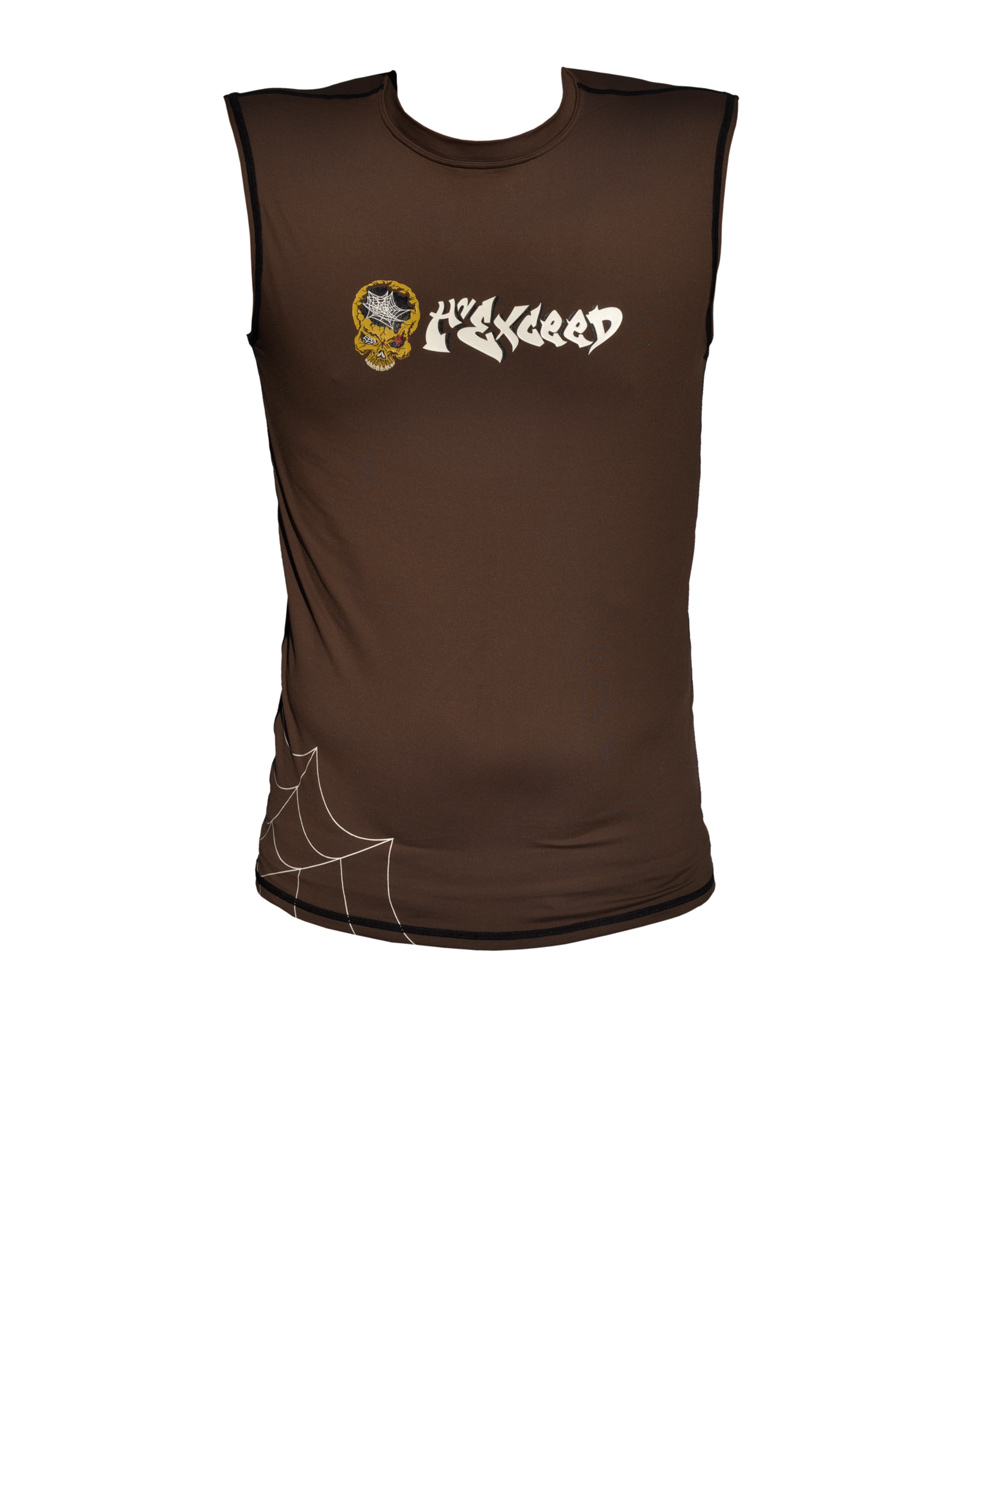 Exceed Eternity Sleeveless Mens Sleeveless Rash Guard